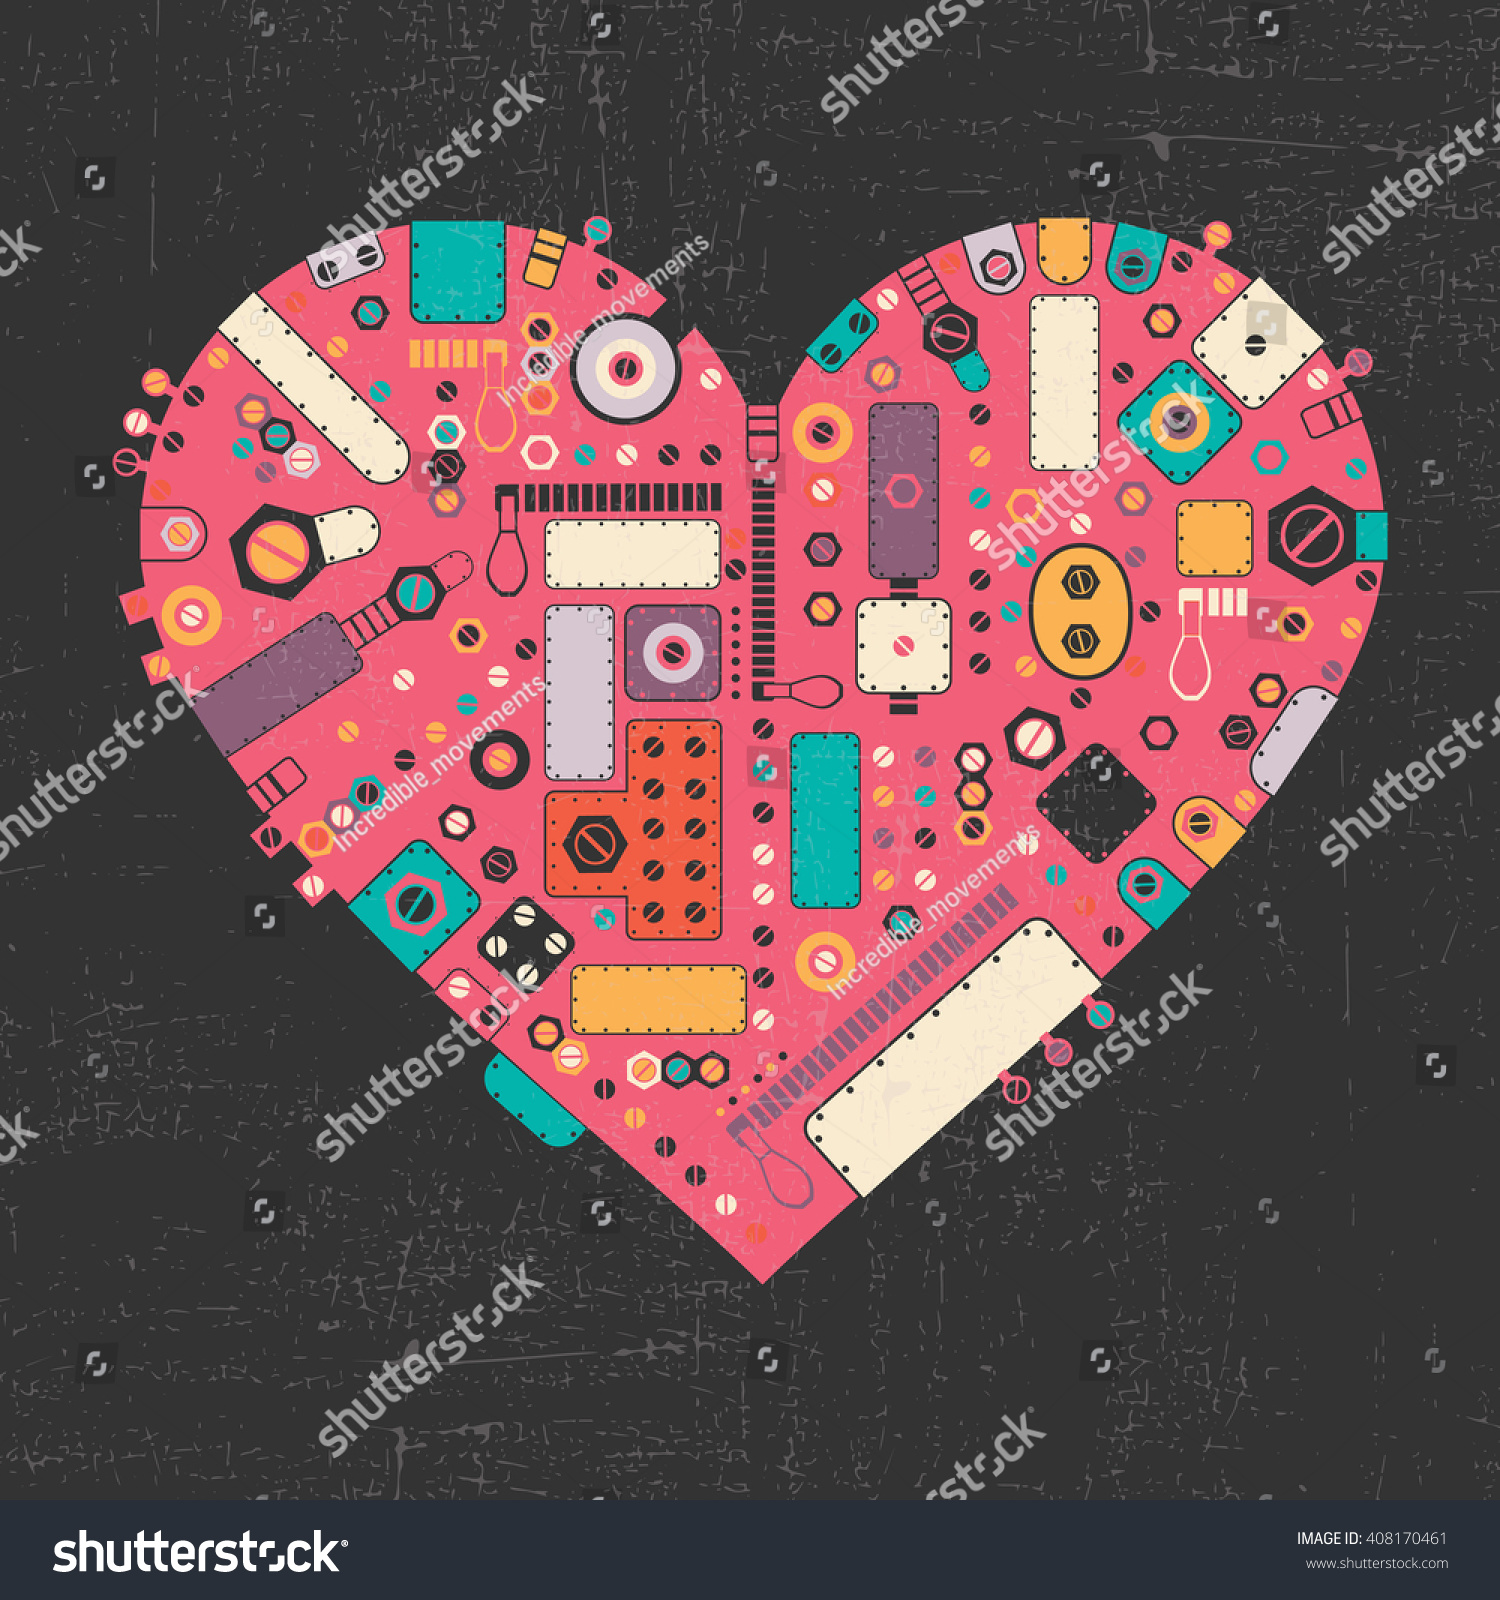 Pink steam punk heart with different color element shapes on black grunge background Vector illustration